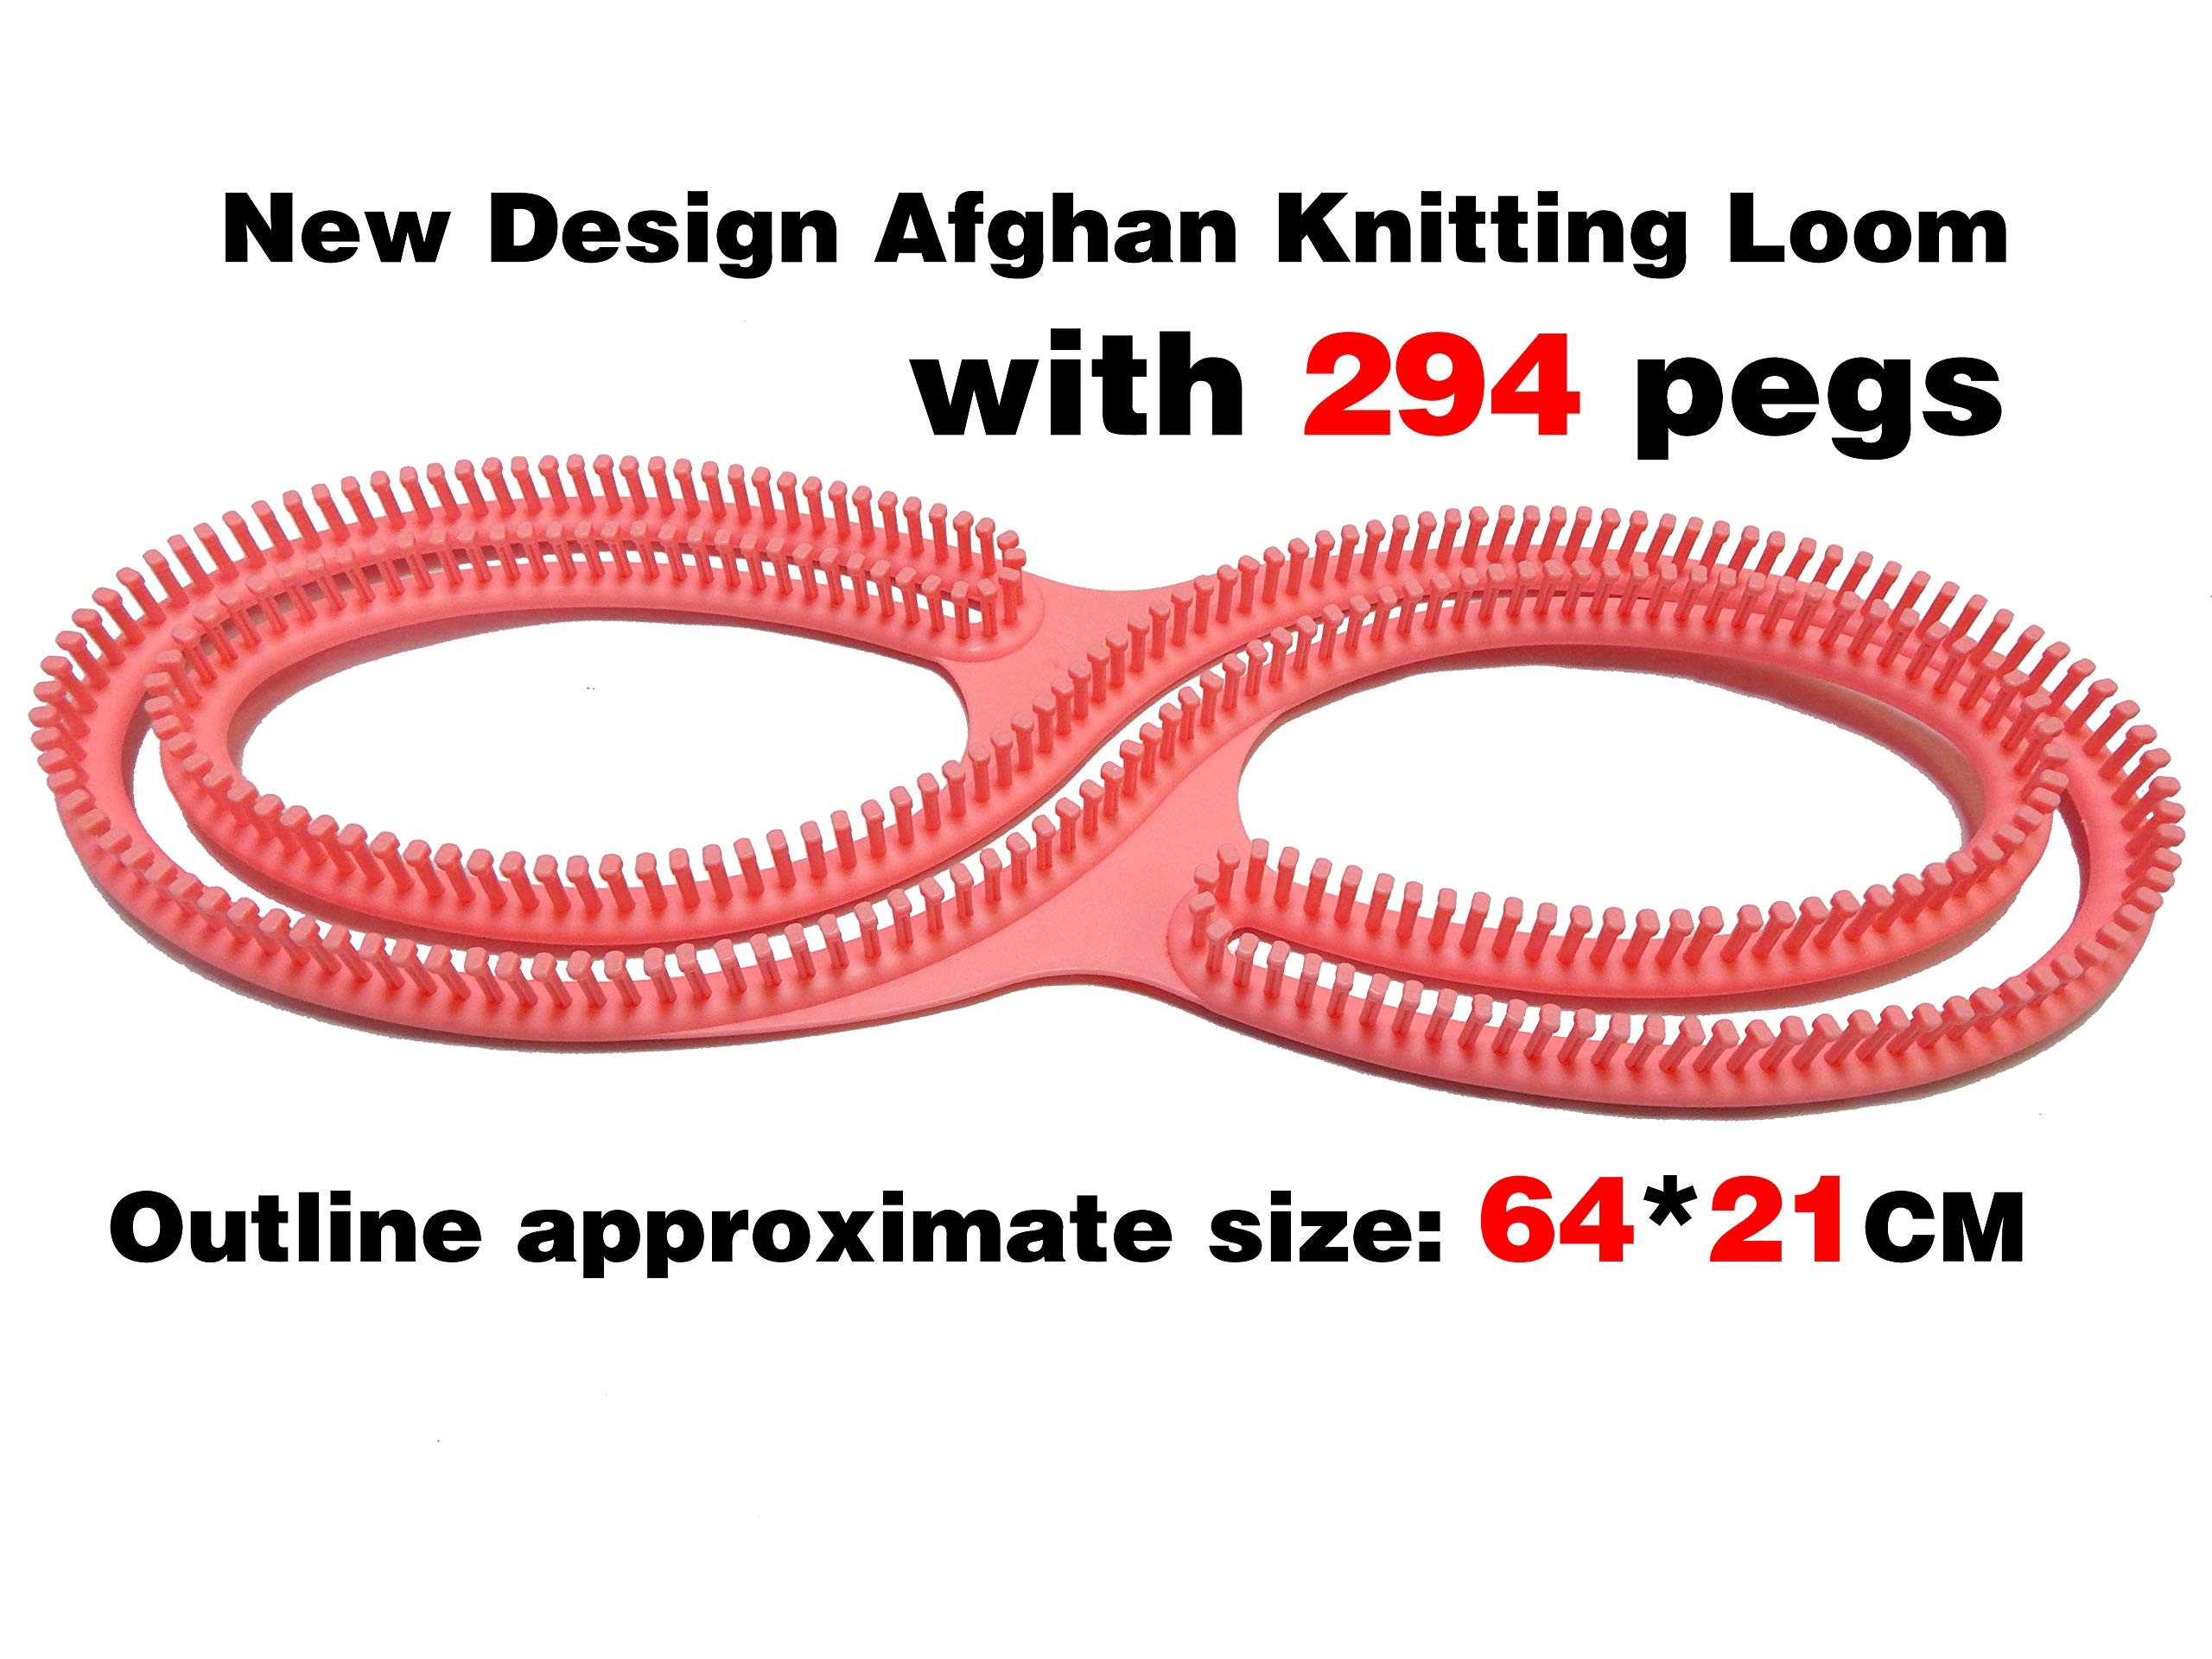 New Design Serenity Loom Afghan Loom Knitting Looms Knitting Board Infinity S Loom with 294 pegs with Crochet Hooks Knitting Needles for Large Projects Shawl/Scarf/Blankets Knitter by ALIMELT (Image #2)